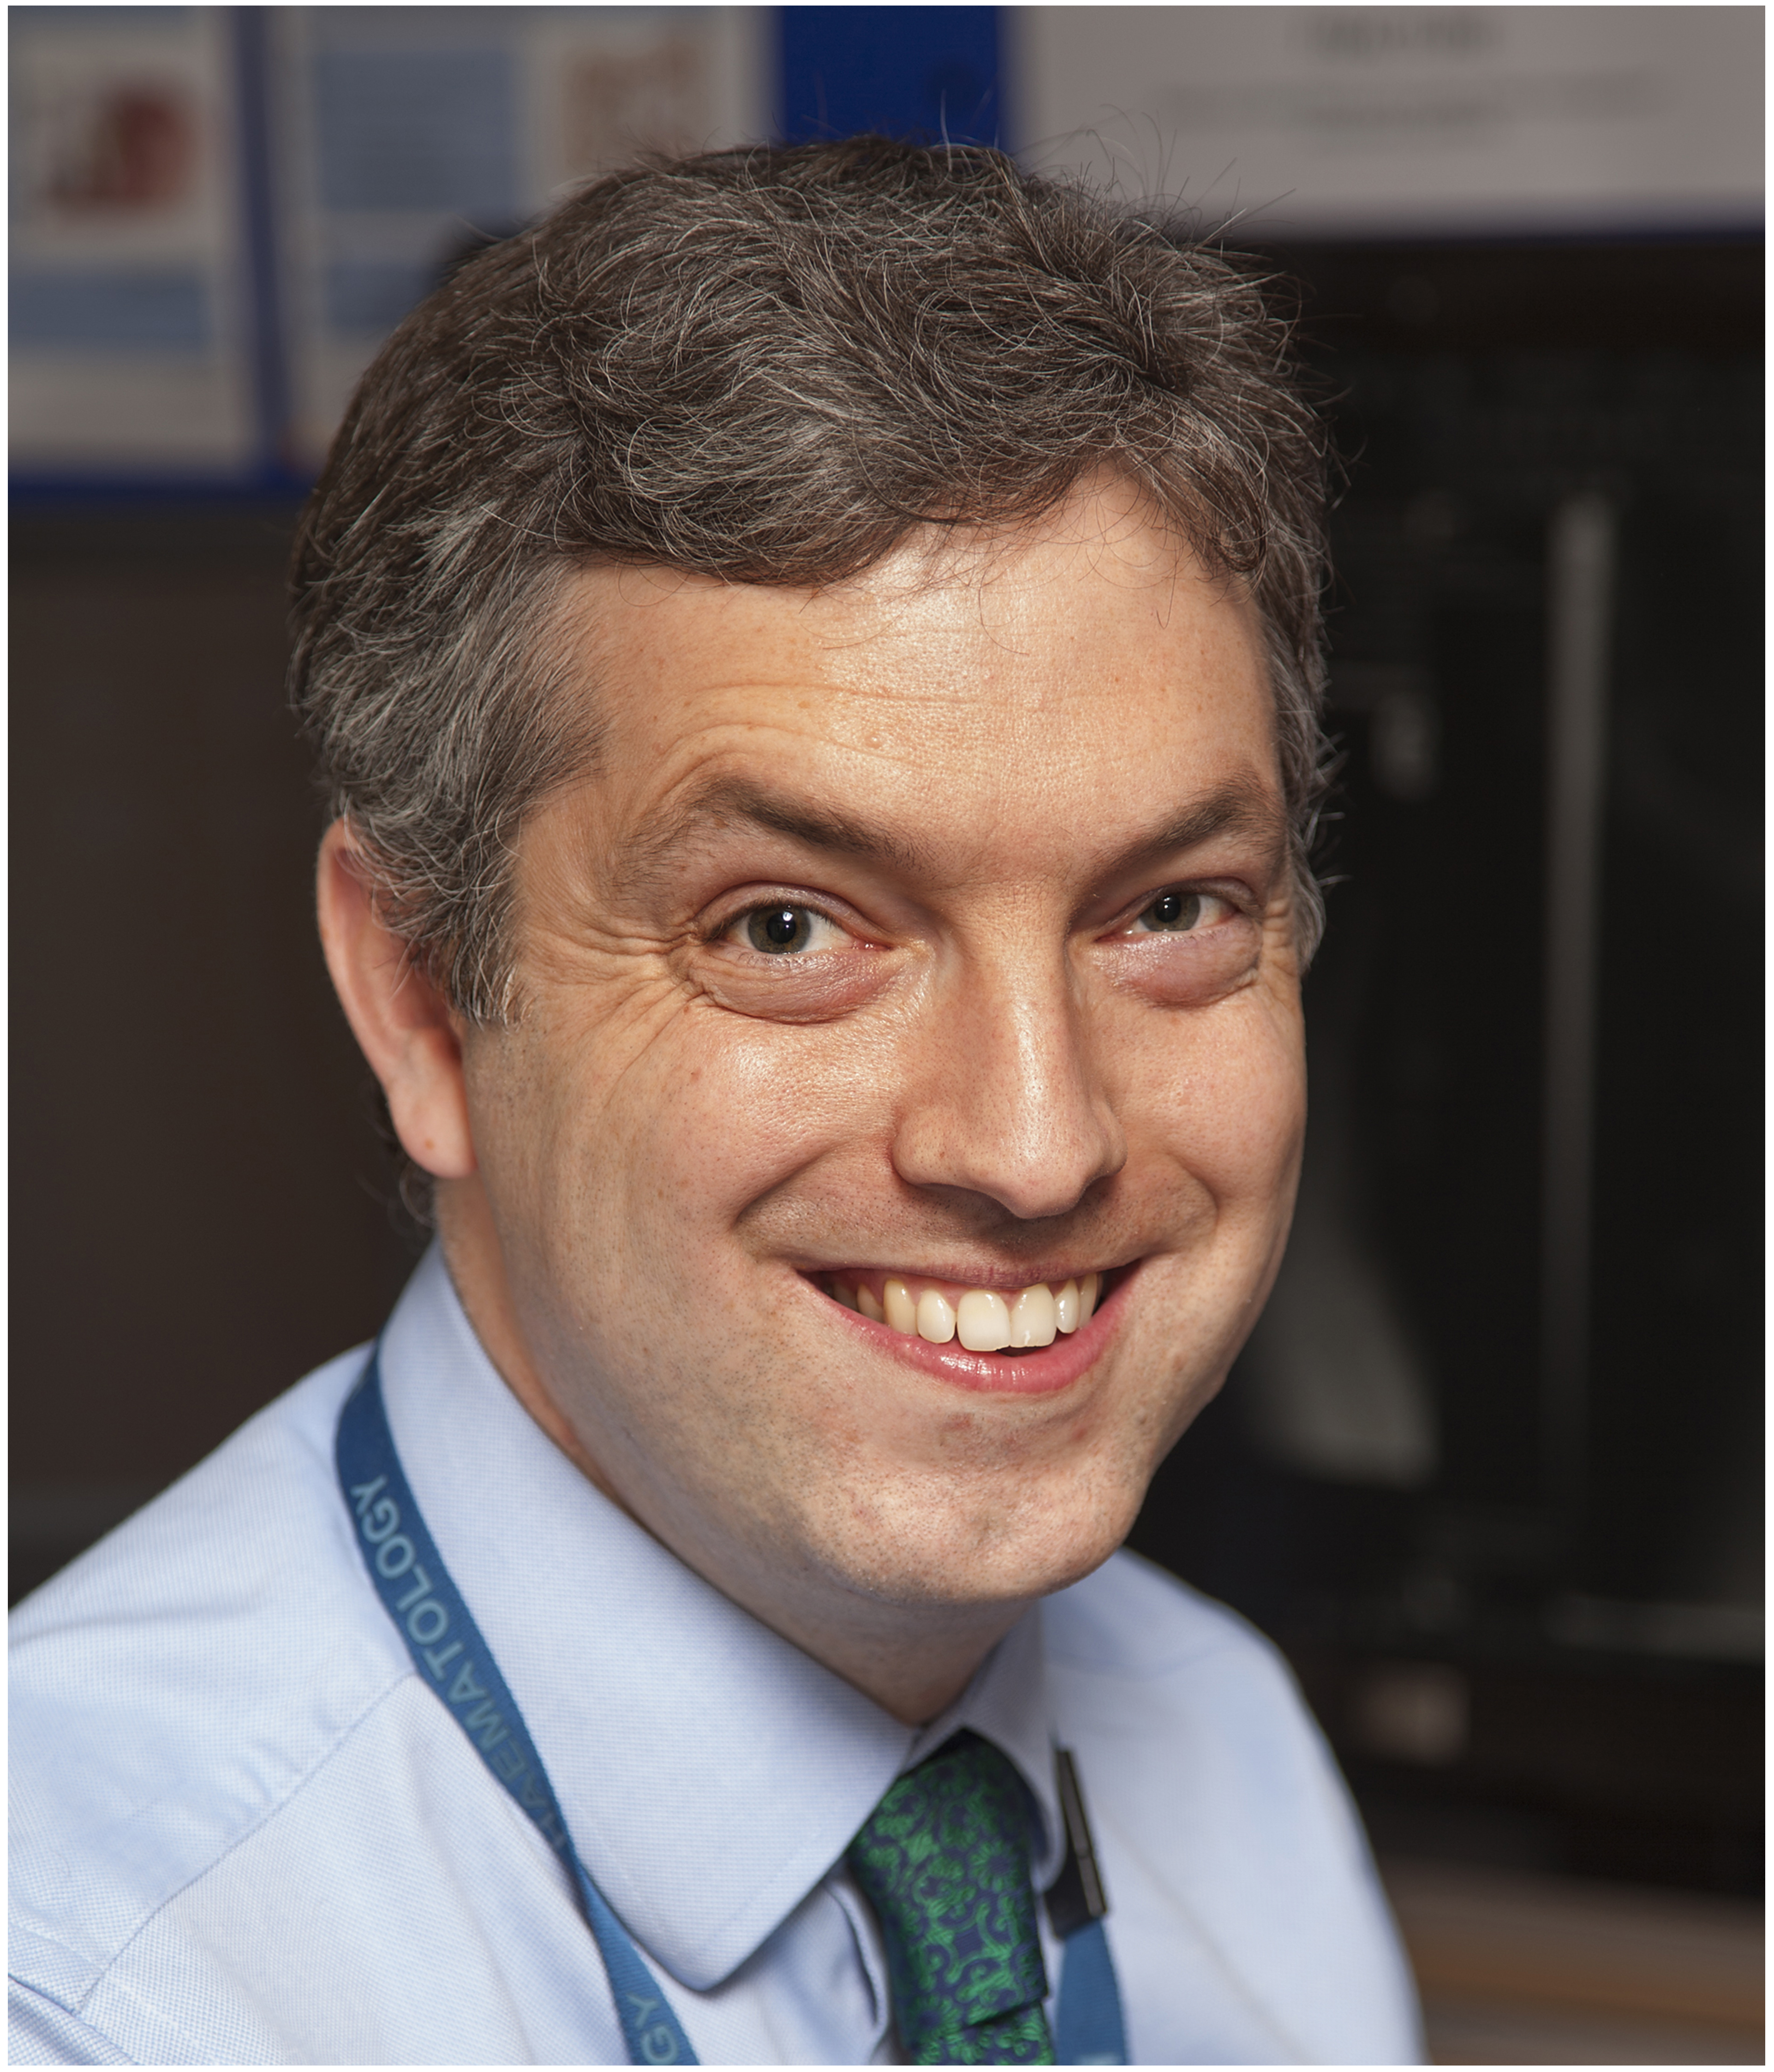 Ben Uttenthal, consultant haematologist specialising in CAR-T cell therapy at Addenbrooke's.